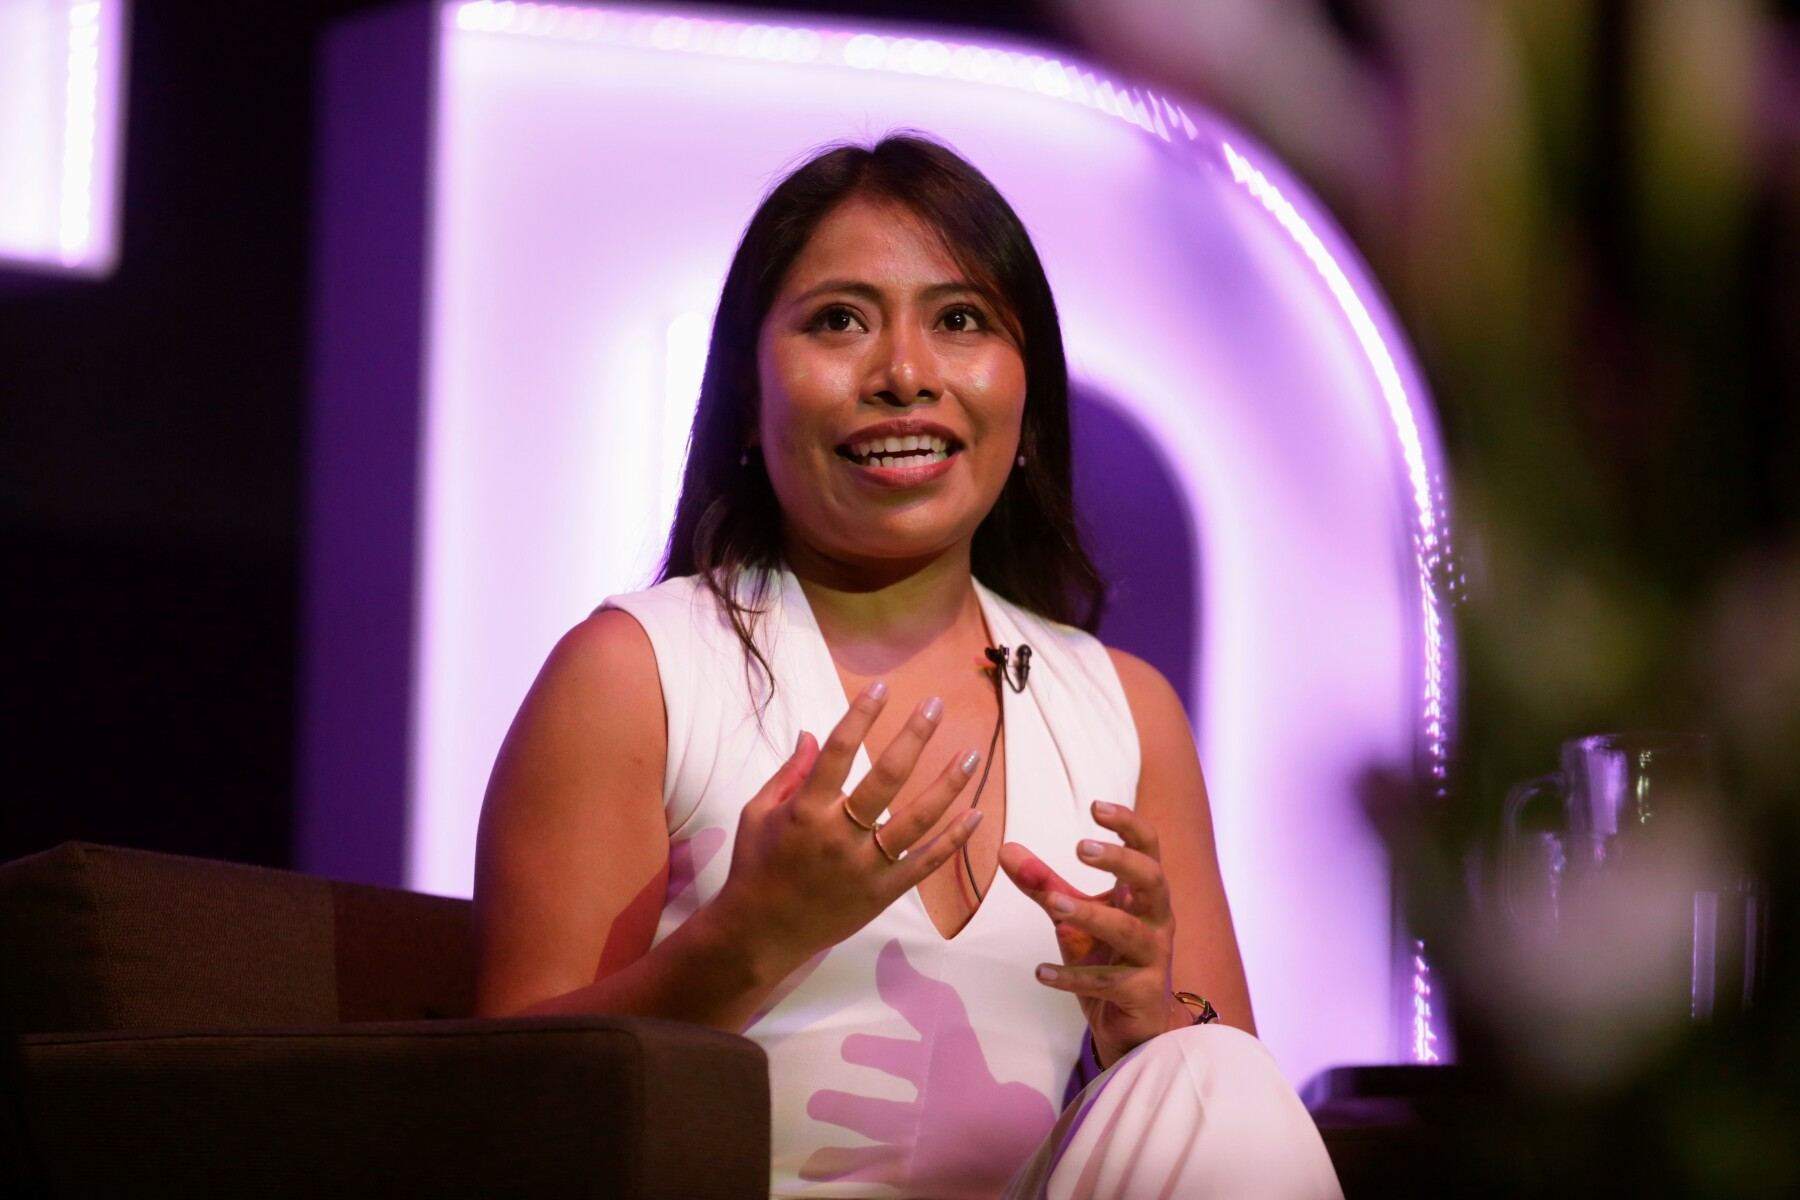 Mexican actress Yalitza Aparicio attends to the Gender Equity Forum at Luis Elizondo Auditorium in Monterrey